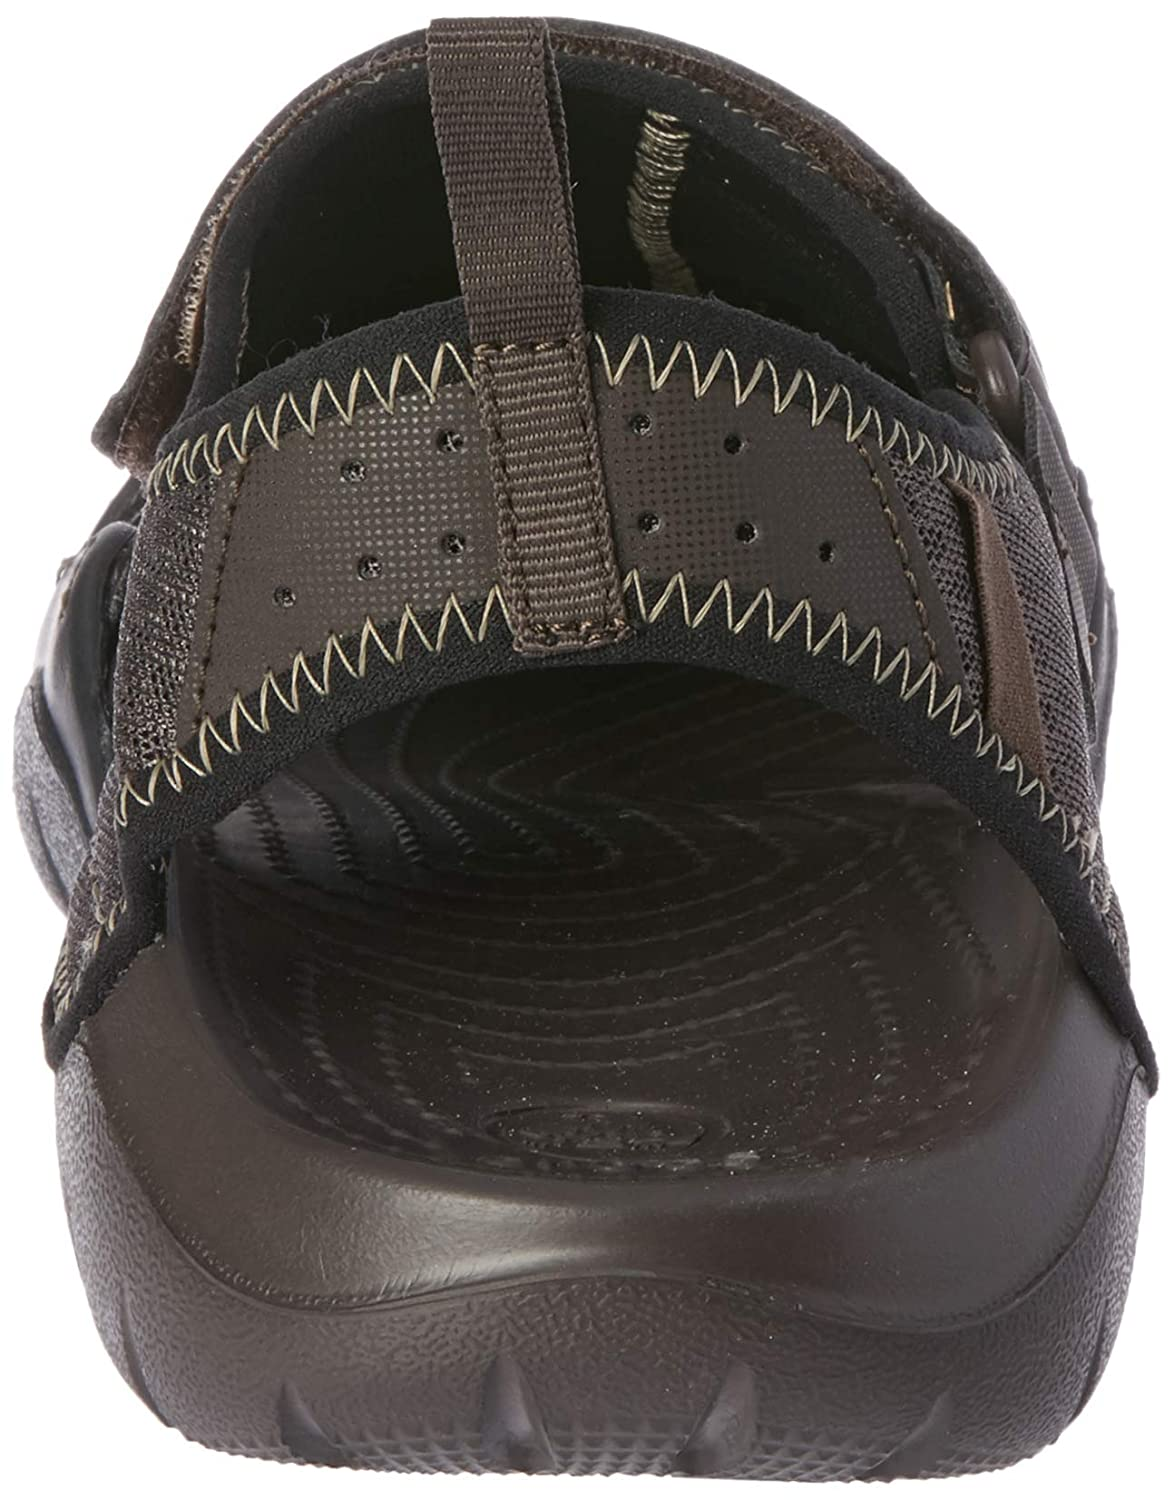 d6053a1e374f crocs Men s Swiftwater Sandal M and Espresso M8 (15041-22Z)  Buy Online at  Low Prices in India - Amazon.in